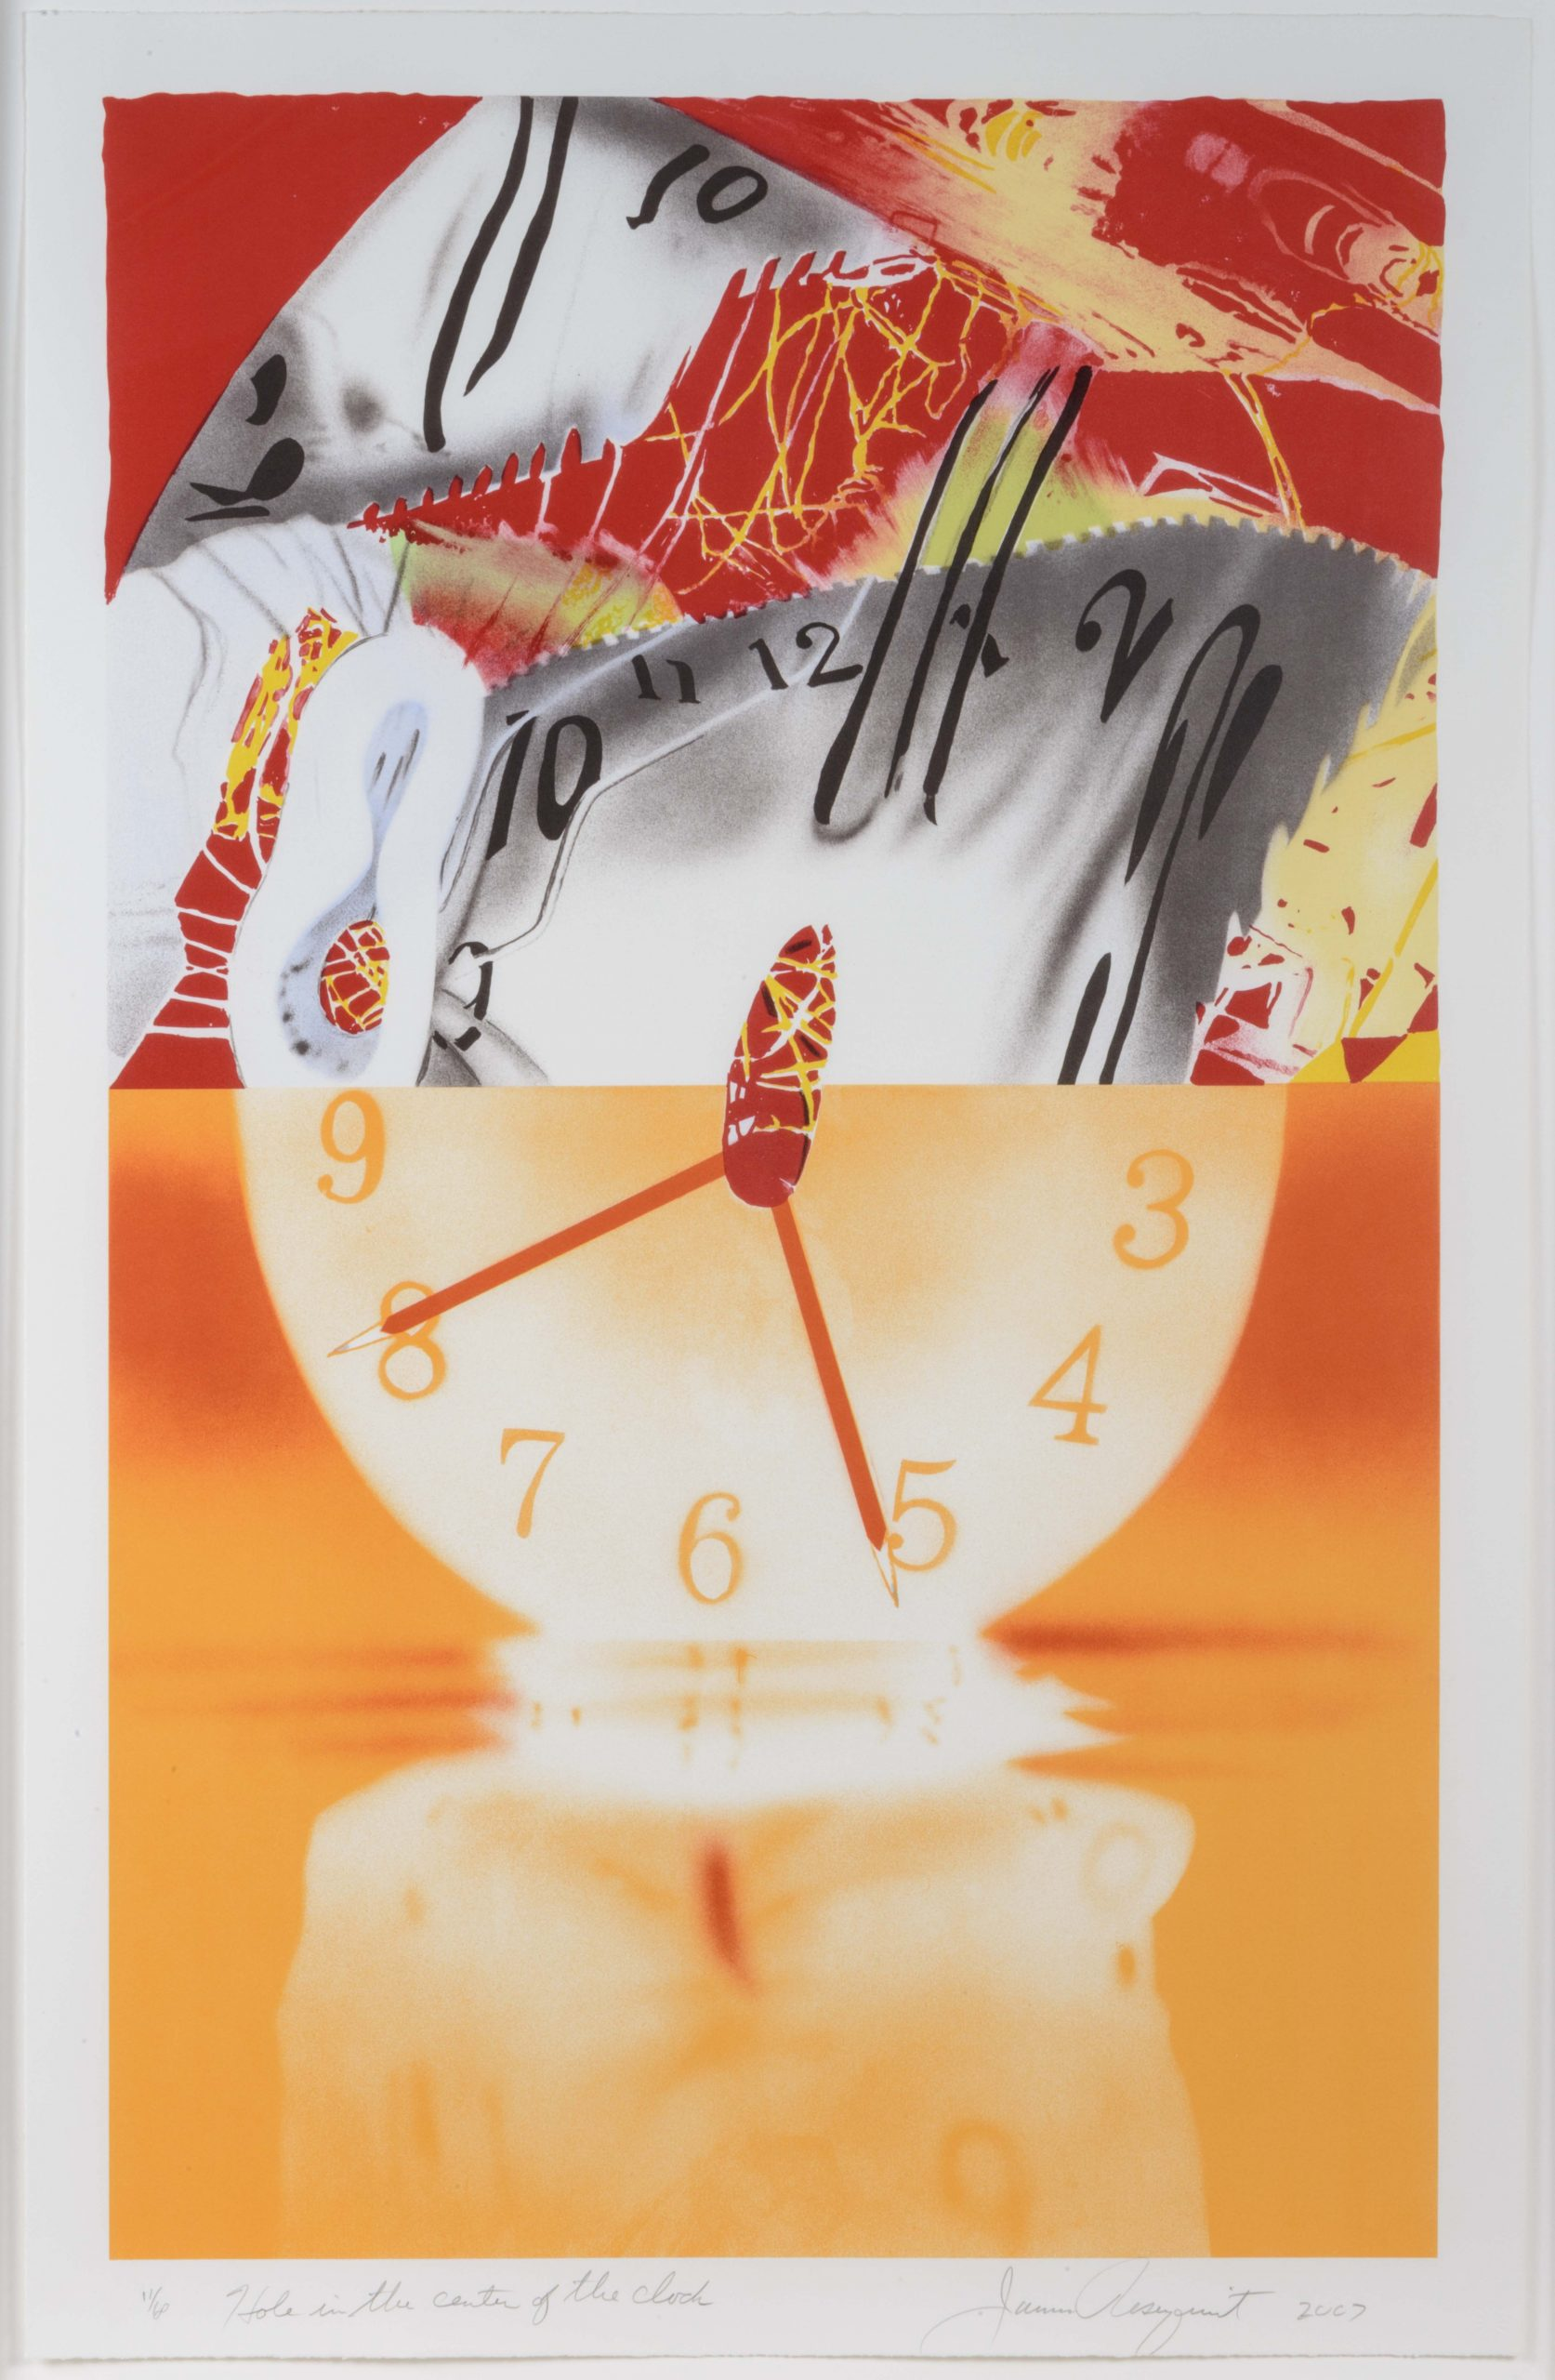 The Hole in the Center of the Clock by James Rosenquist